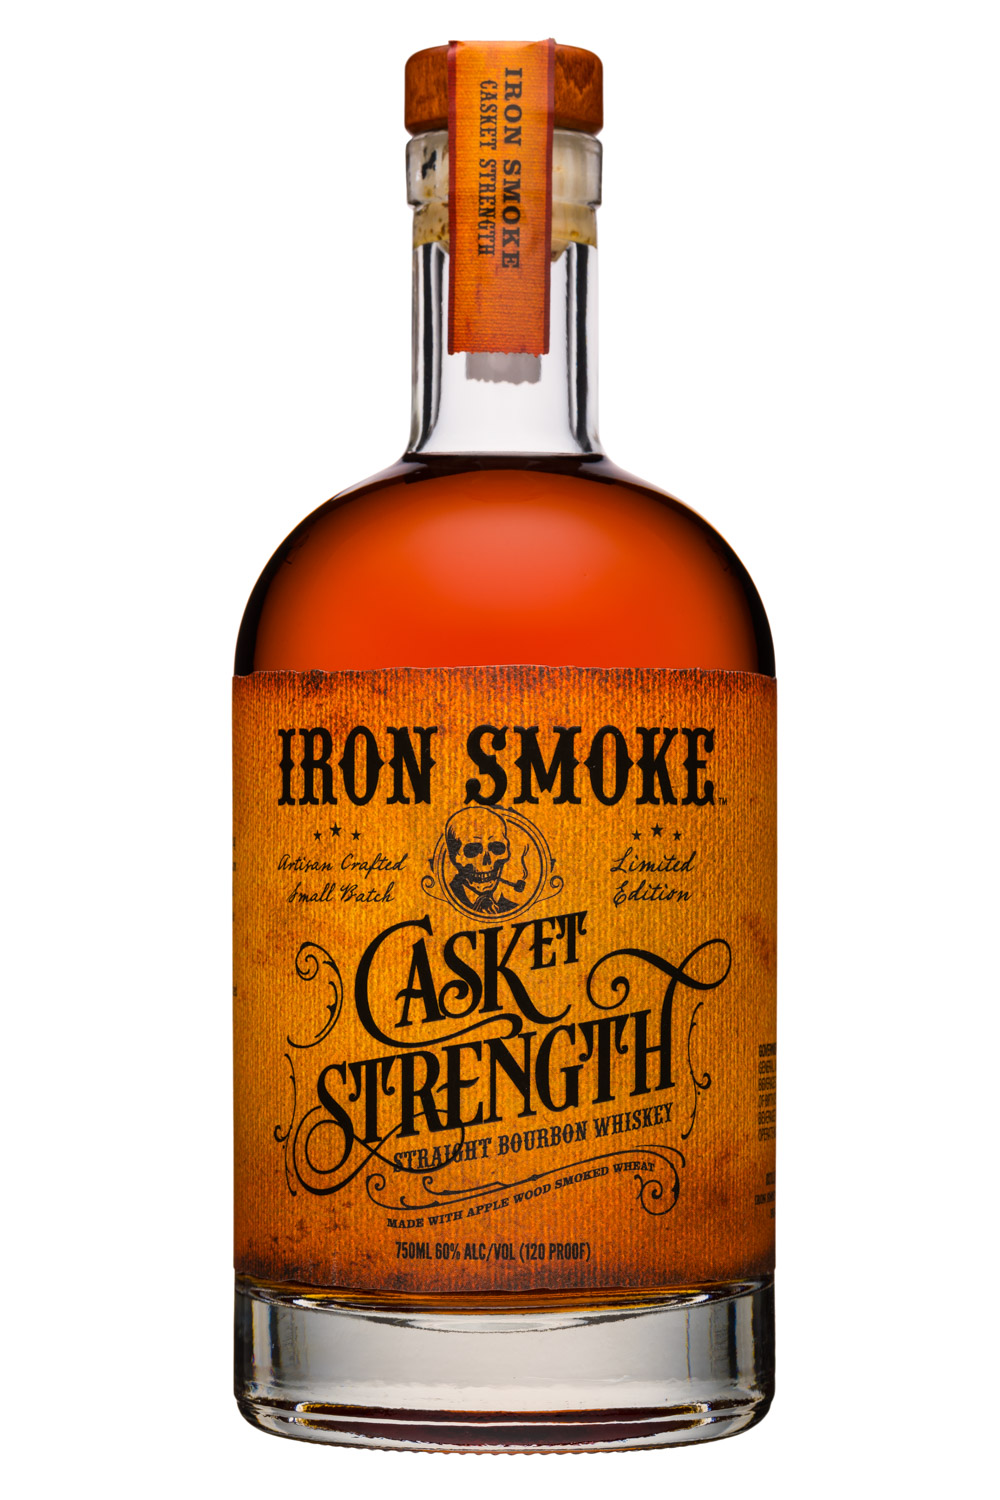 Casket Strength - Straight Bourbon Whiskey